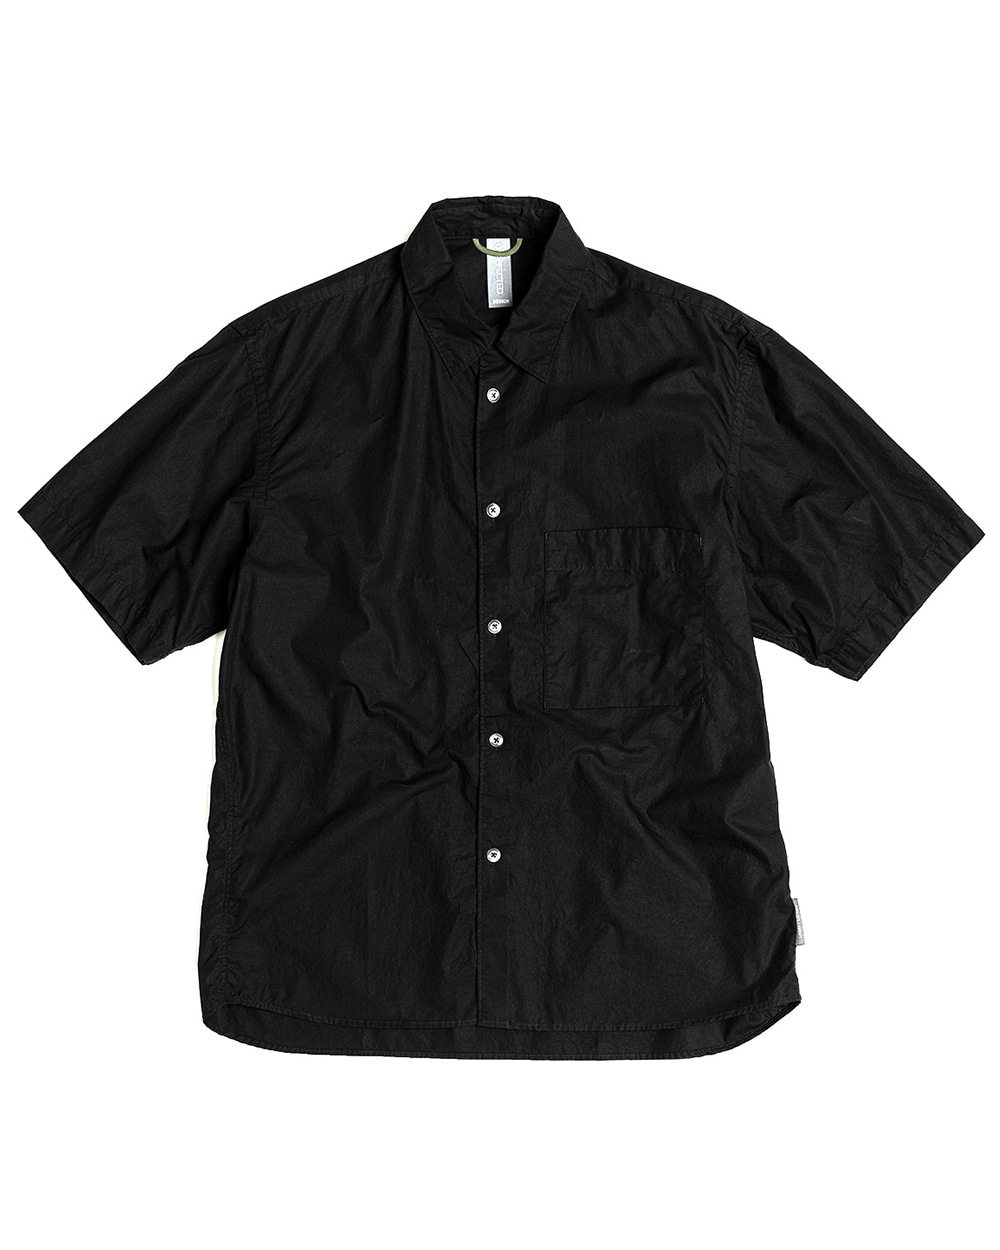 언어펙티드 LOGO LABEL HALF SHIRT (Black)